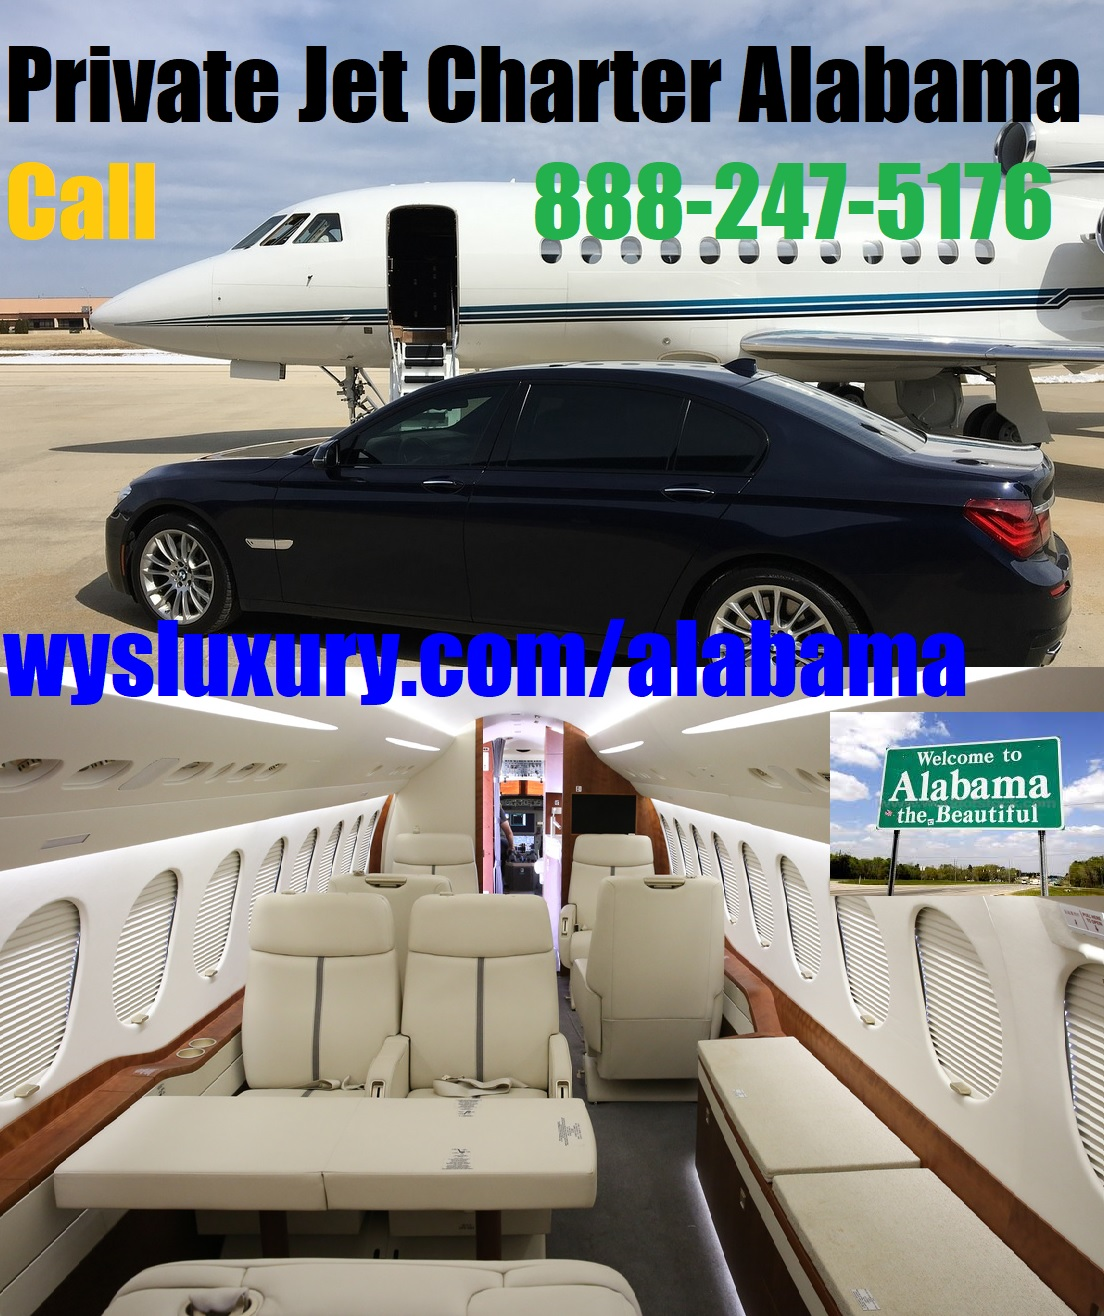 Rental Companies Near Me: Private Jet Charter Flight From Or To Alabama Air Plane